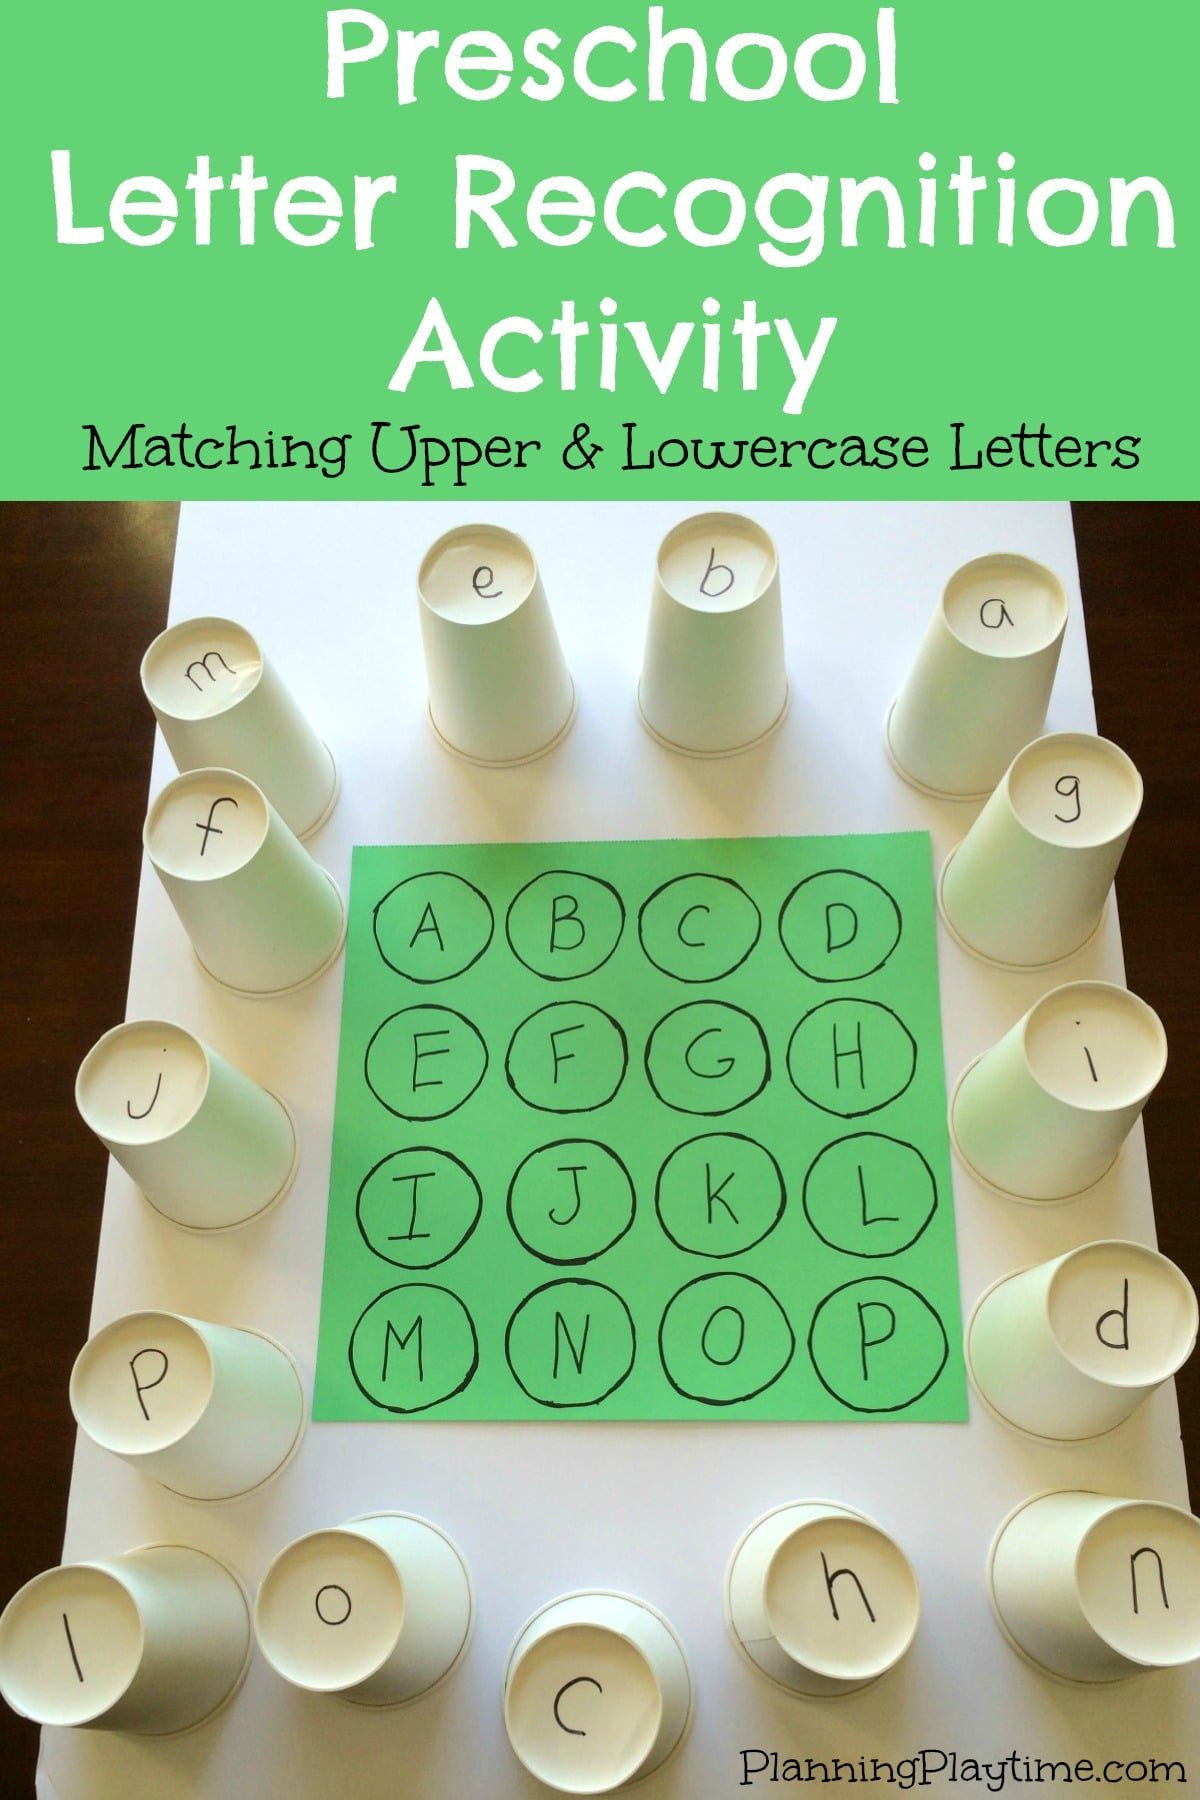 Preschool Letter Recognition Activities  Planning Playtime